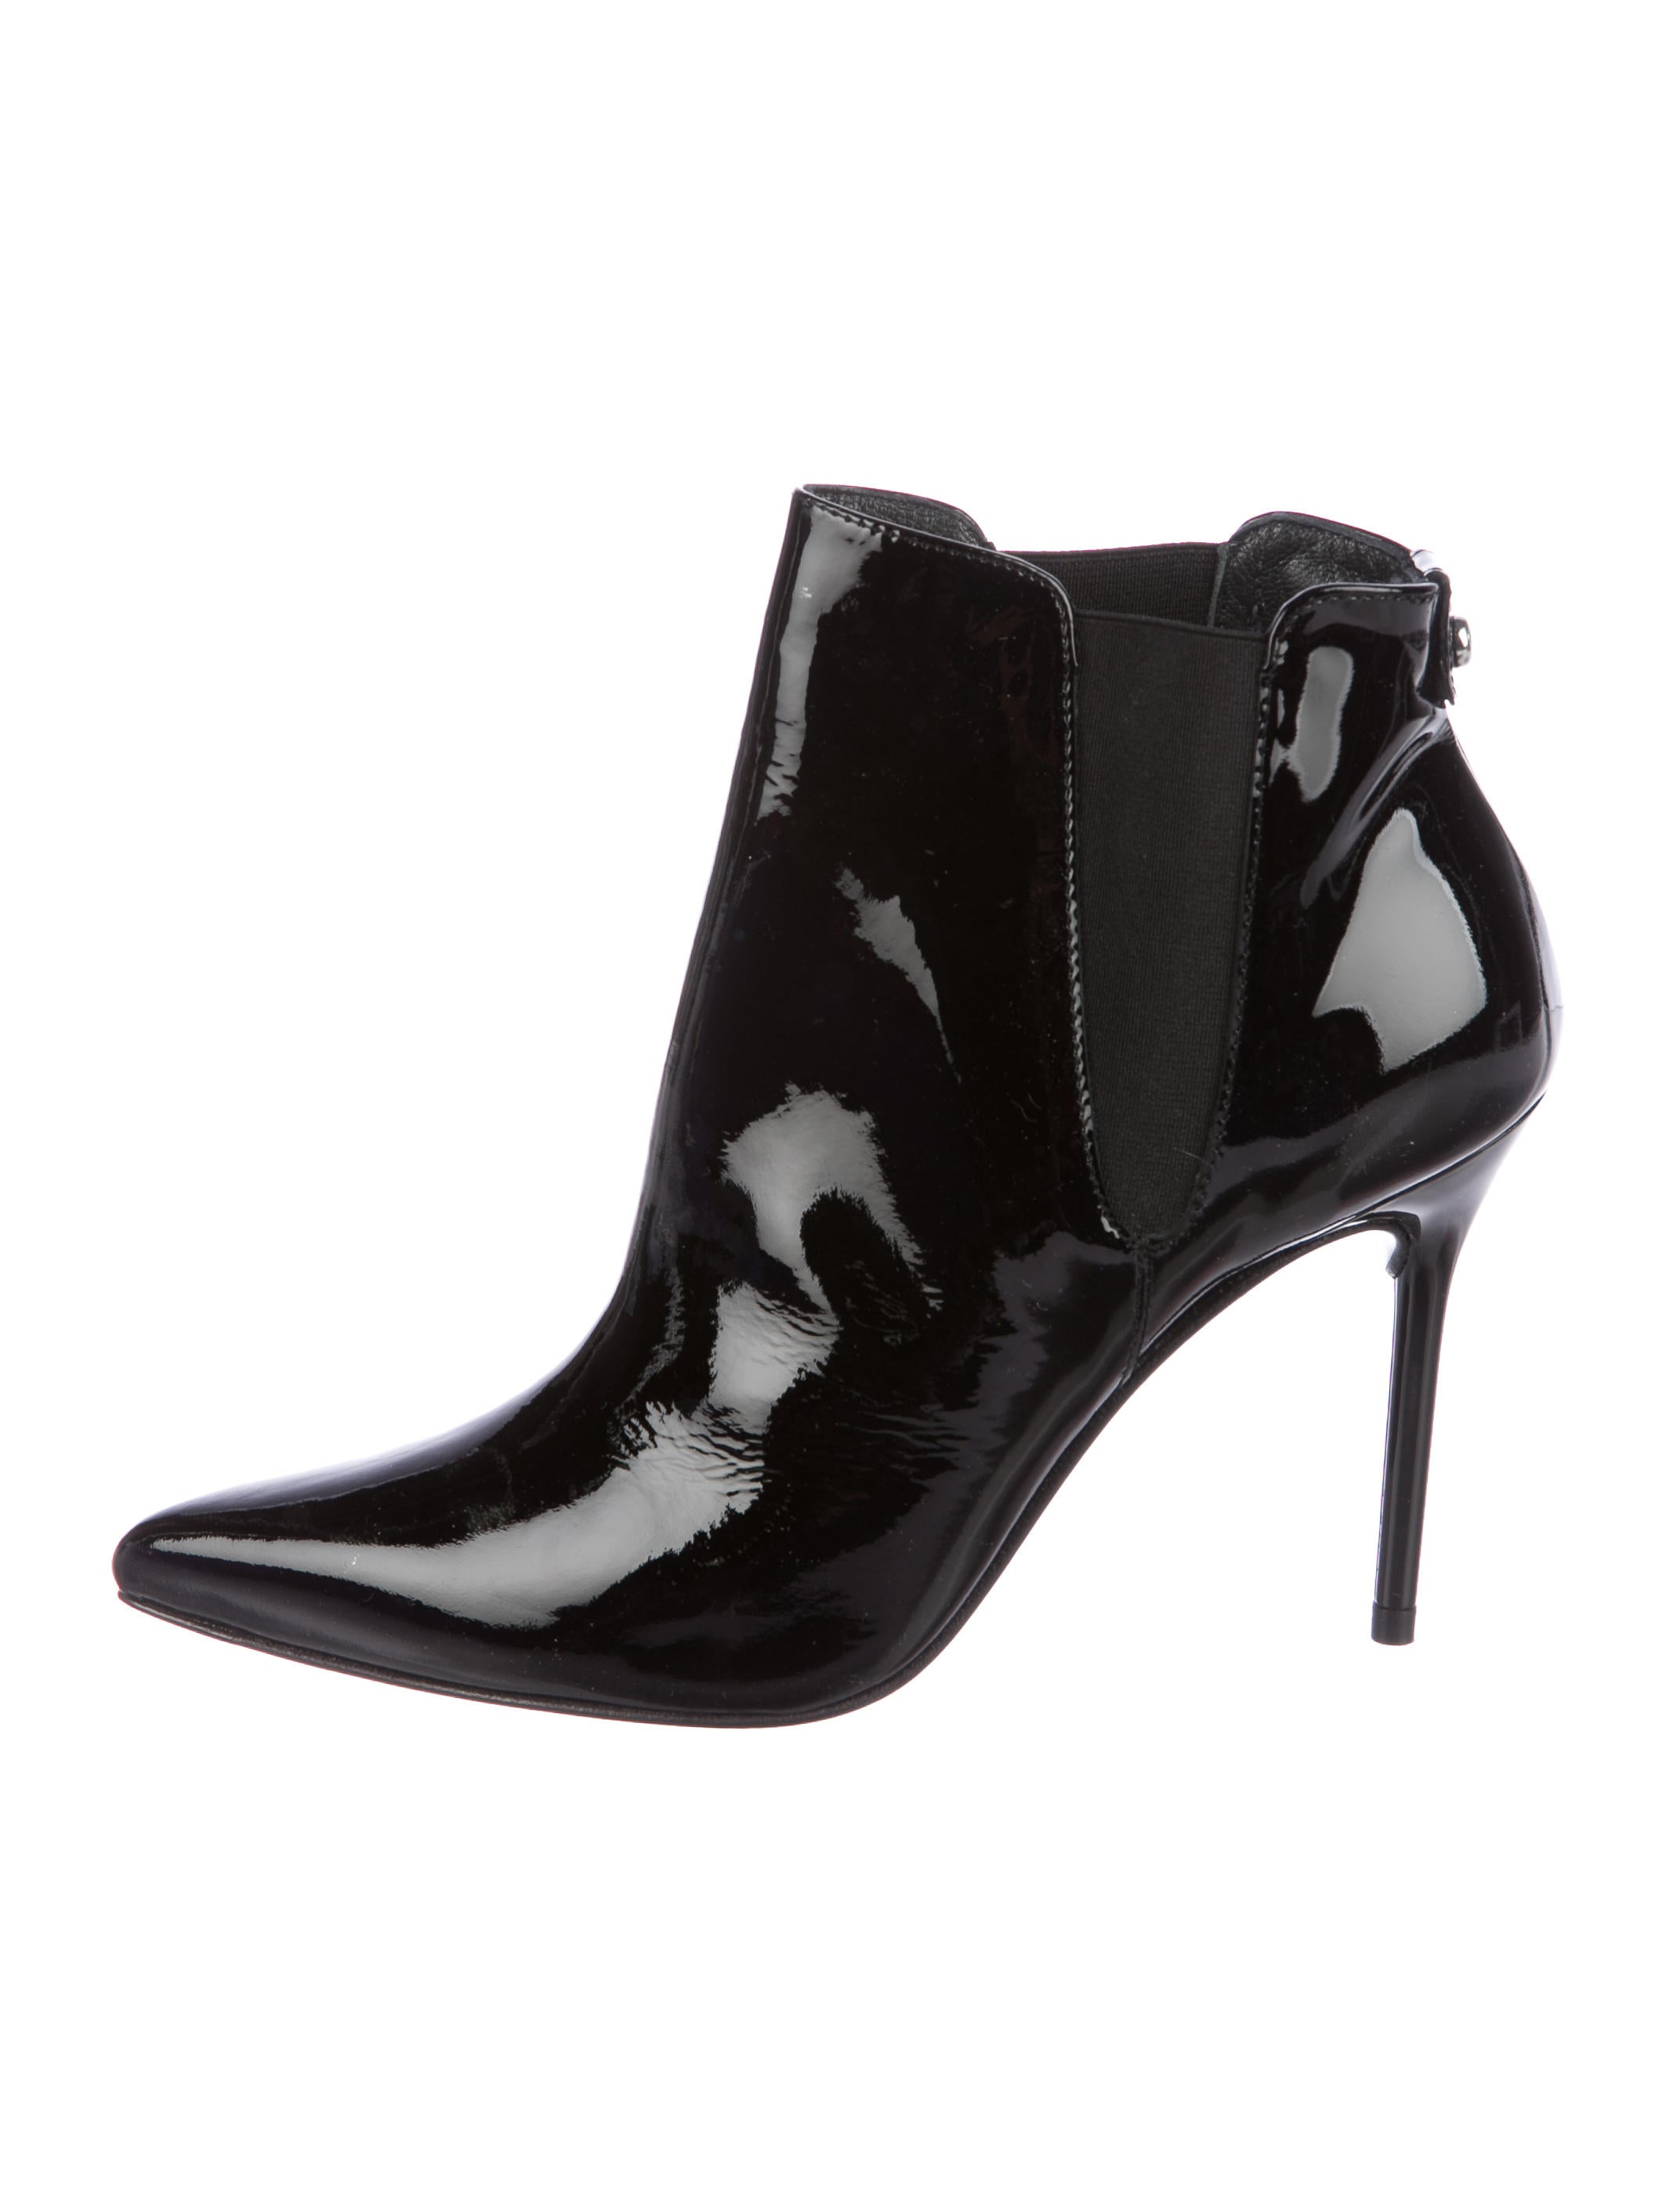 outlet with mastercard discount 100% guaranteed Stuart Weitzman Apogee Patent Booties r47nX0Zbj